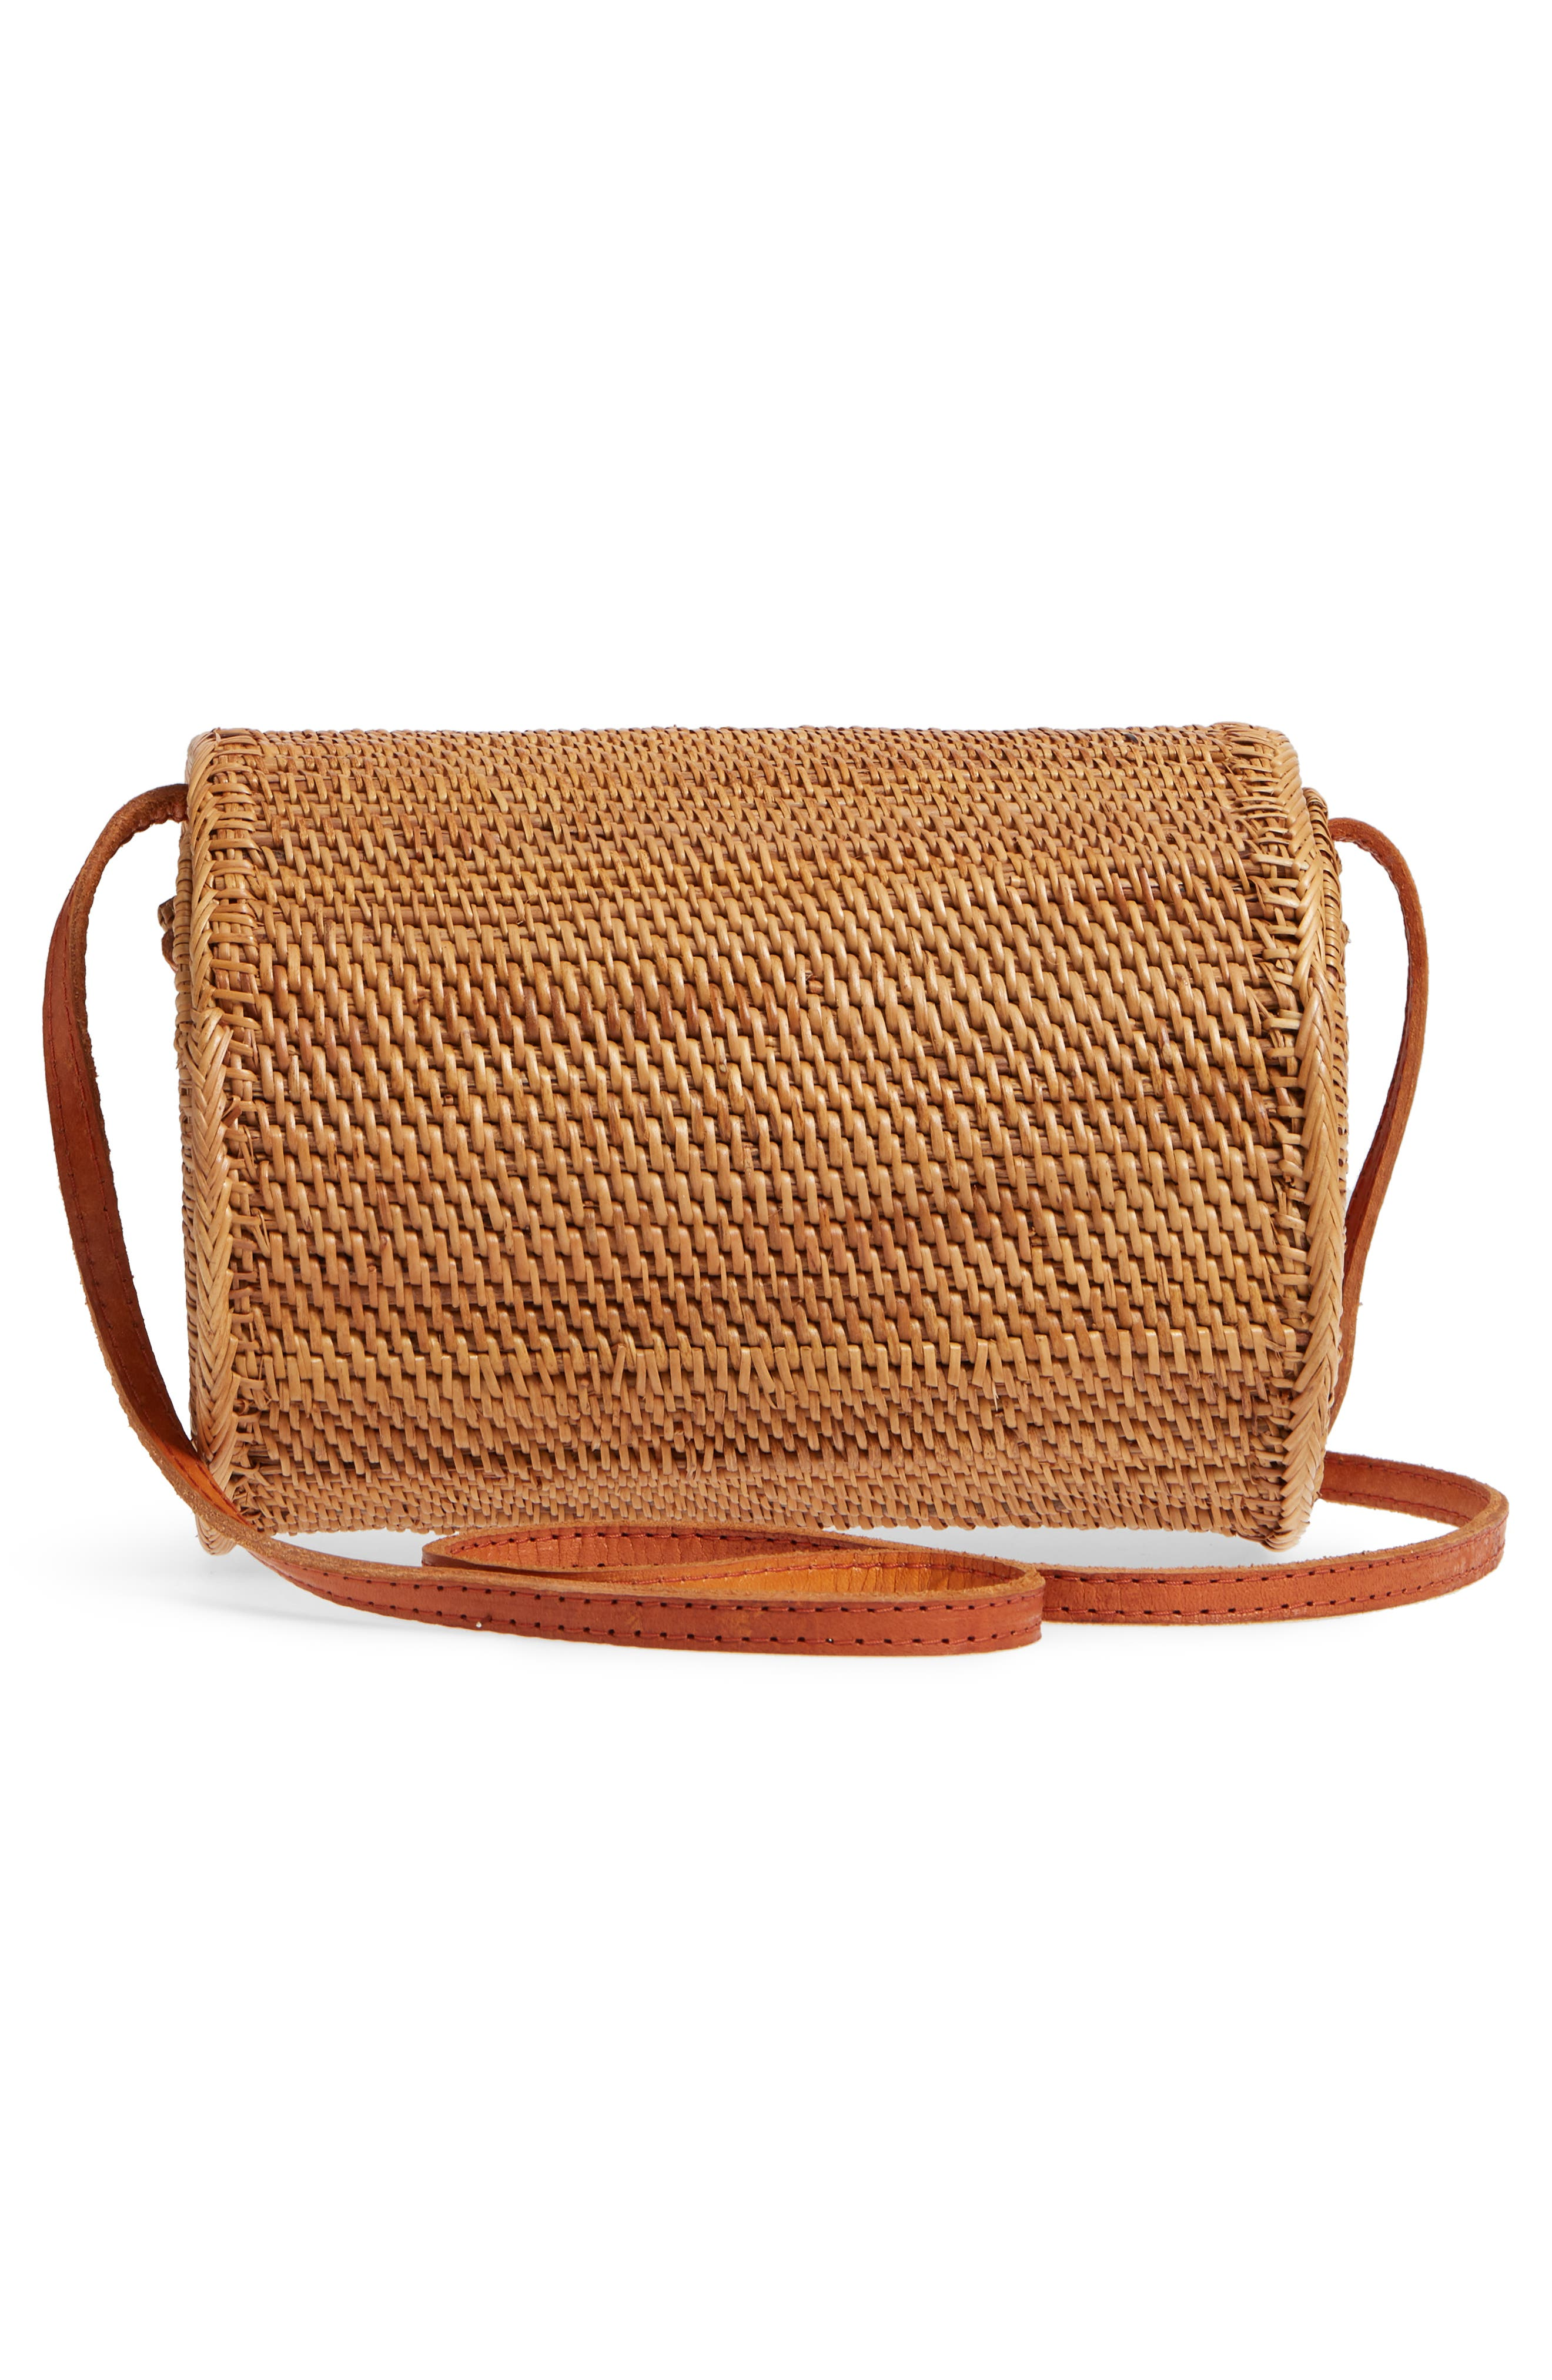 Cylinder Woven Crossbody Bag,                             Alternate thumbnail 3, color,                             230